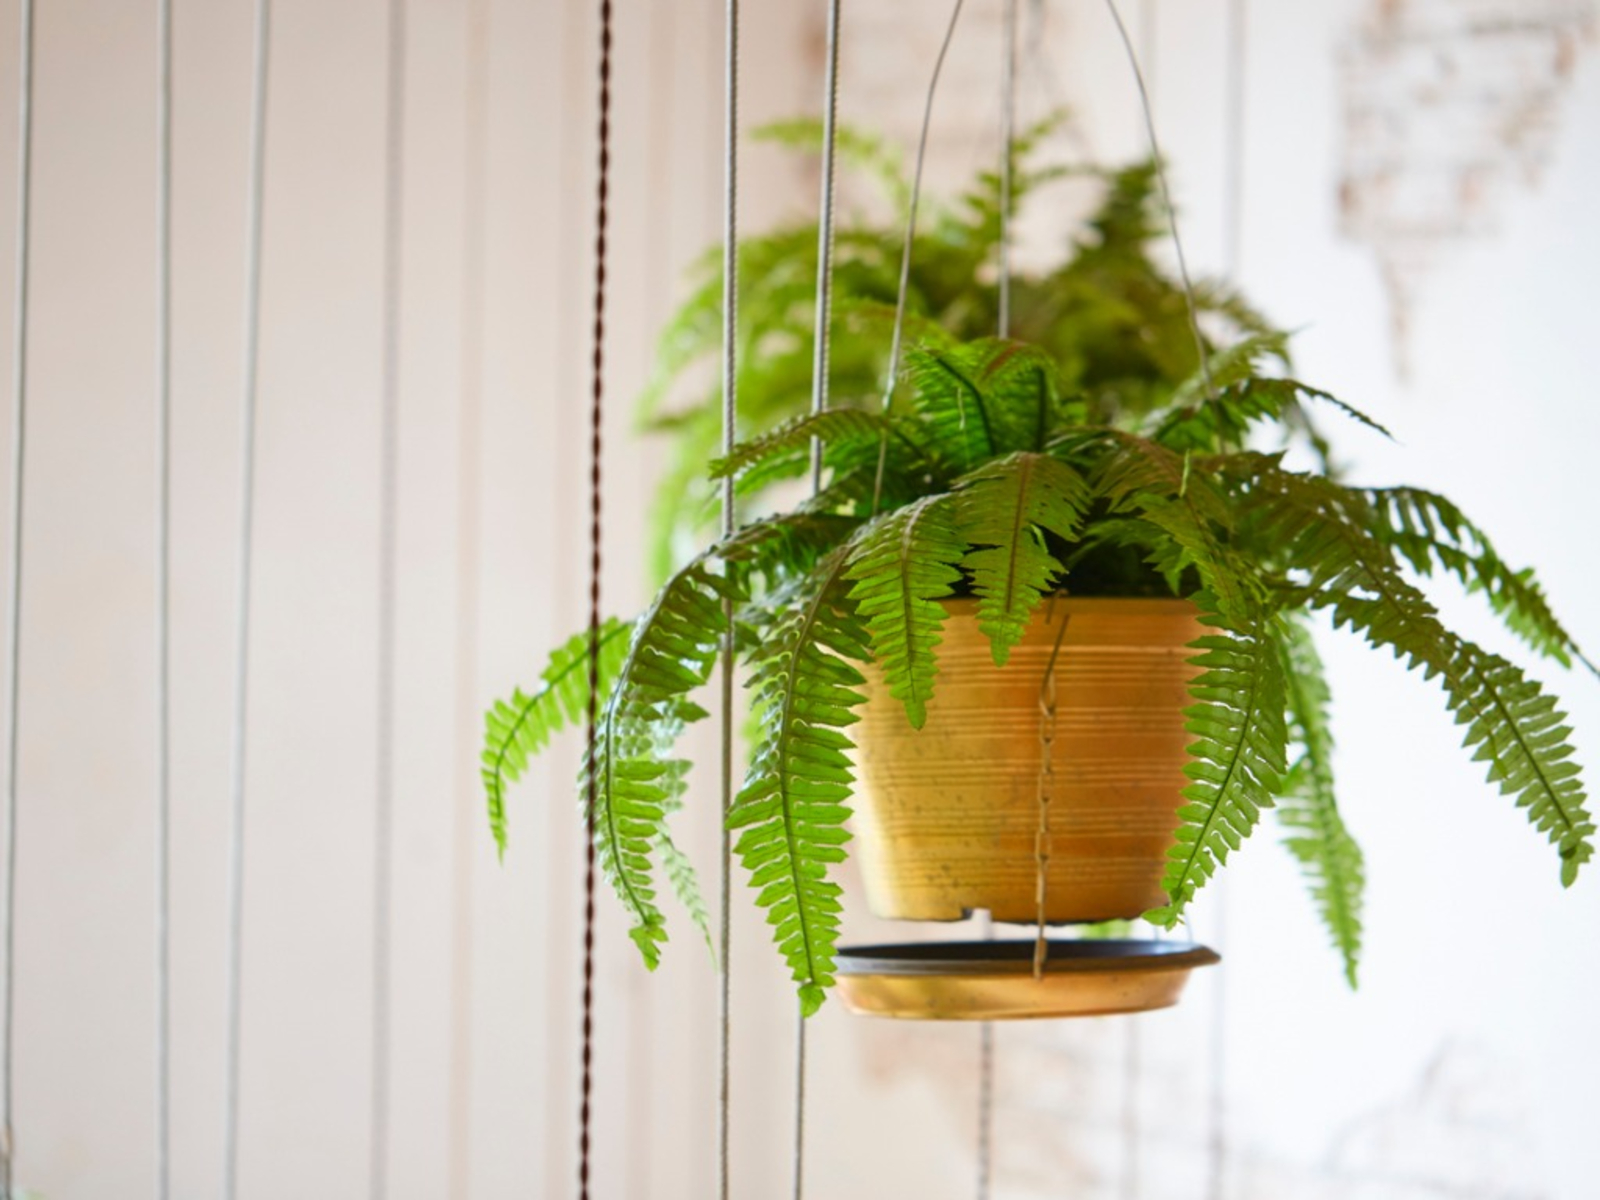 Boston Fern Care How To Take Care Of A Boston Fern